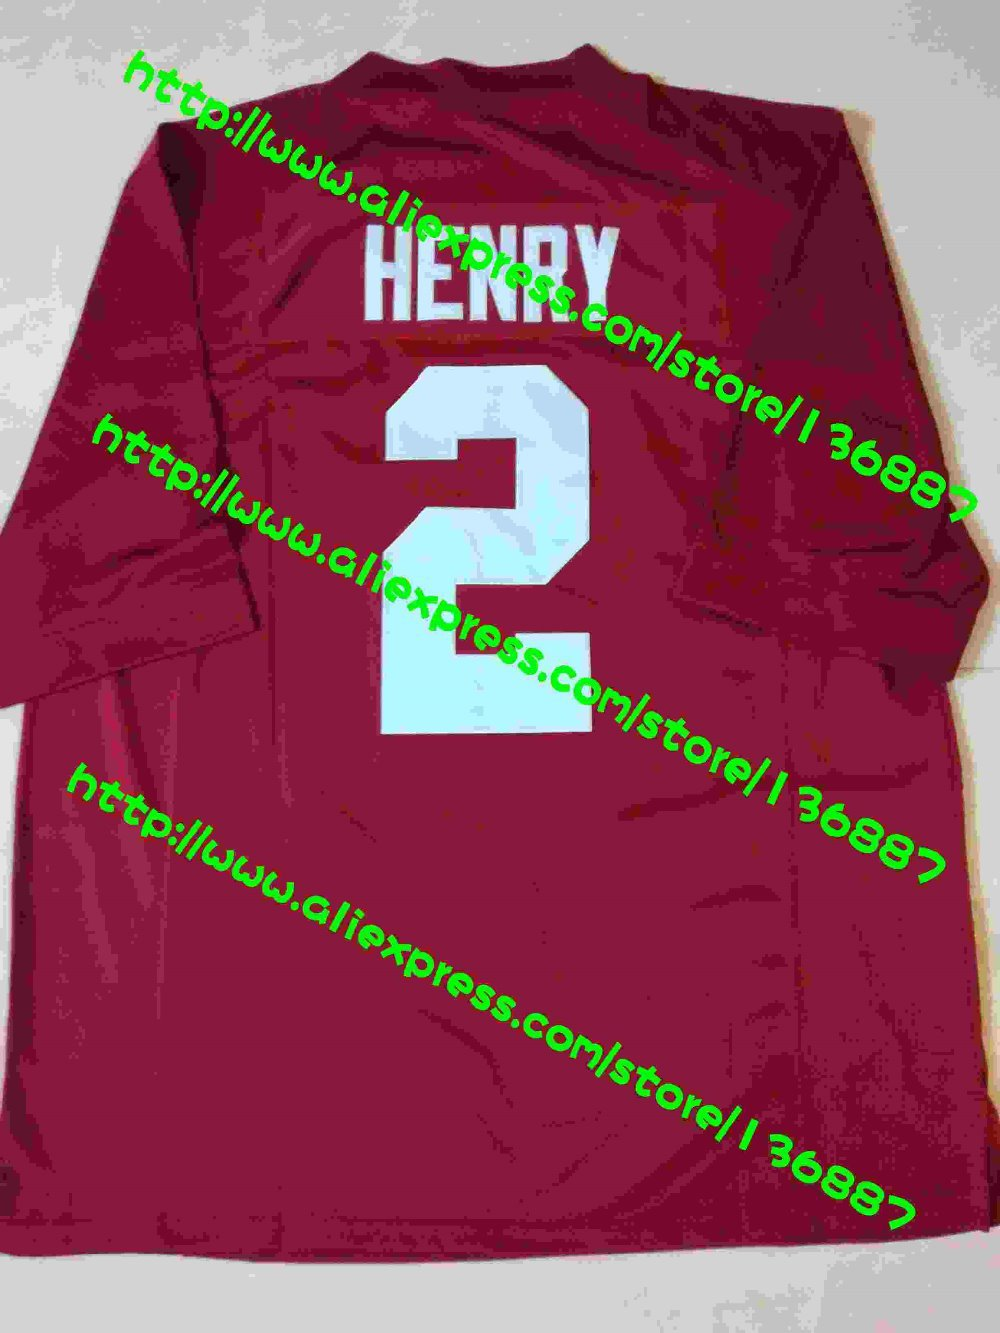 Alabama Crimson Tide #27 #2 Derrick Henry Red White,NCAA College Football Jerseys,2016 New Limited Stitched Jersey.Free Shipping(China (Mainland))